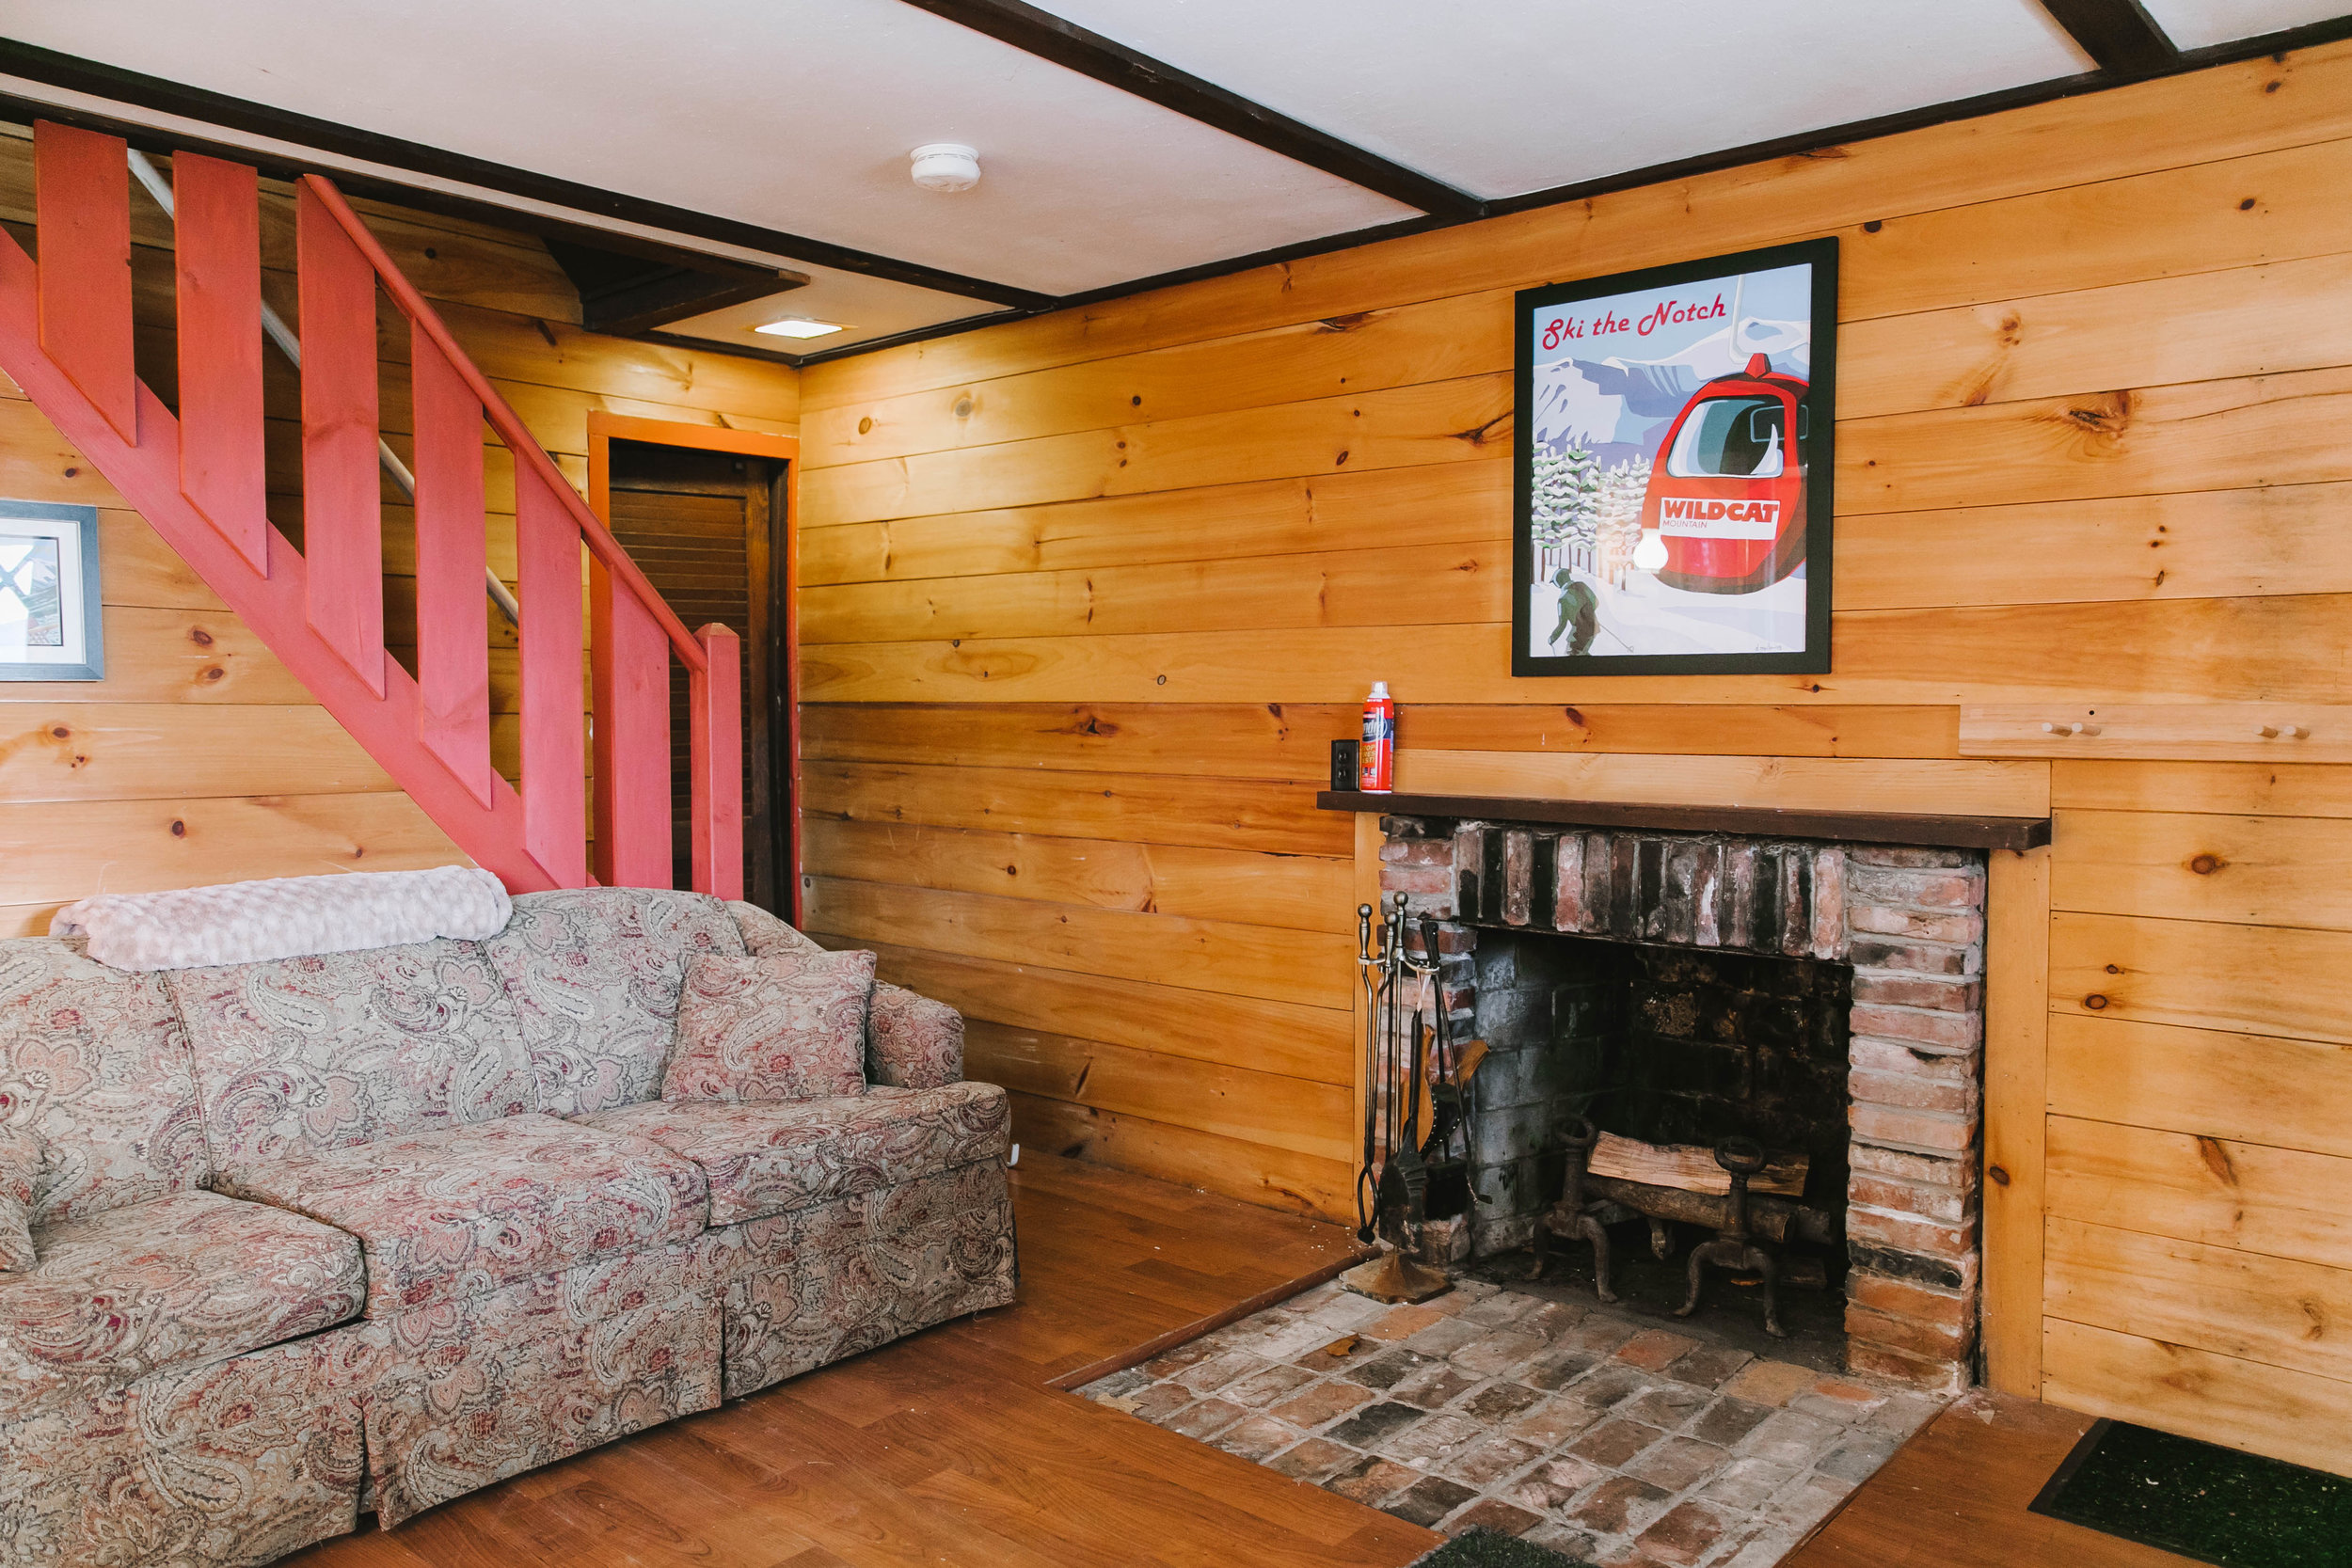 North Conway White Mountains Mt Washington Valley New Hampshire NH vacation home rental by owner airbnb vienna lodge cabin chalet-42.jpg